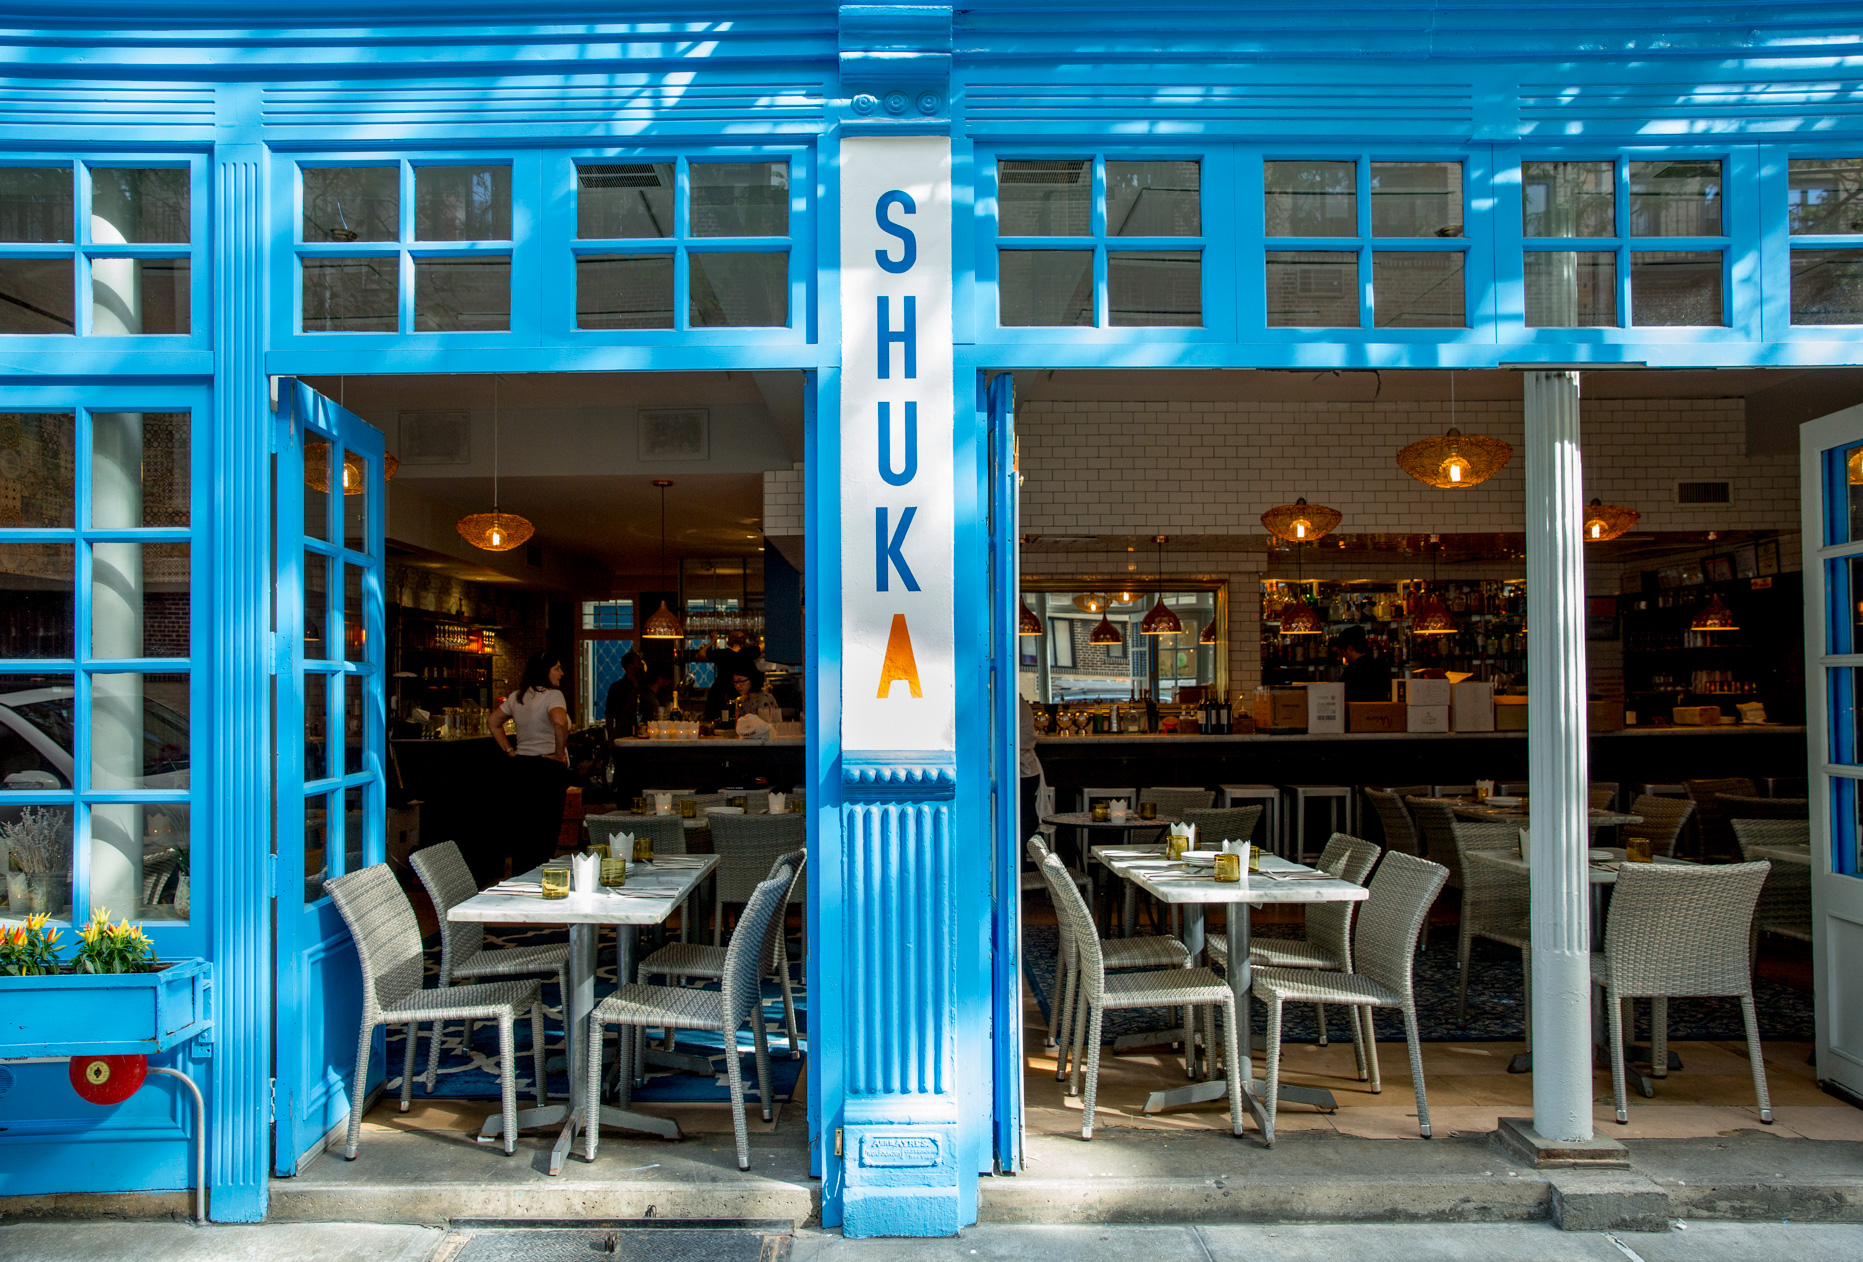 A Guide To The Super Cute Reasonably Priced Restaurant To Catch Up With A Few Friends New York The Infatuation